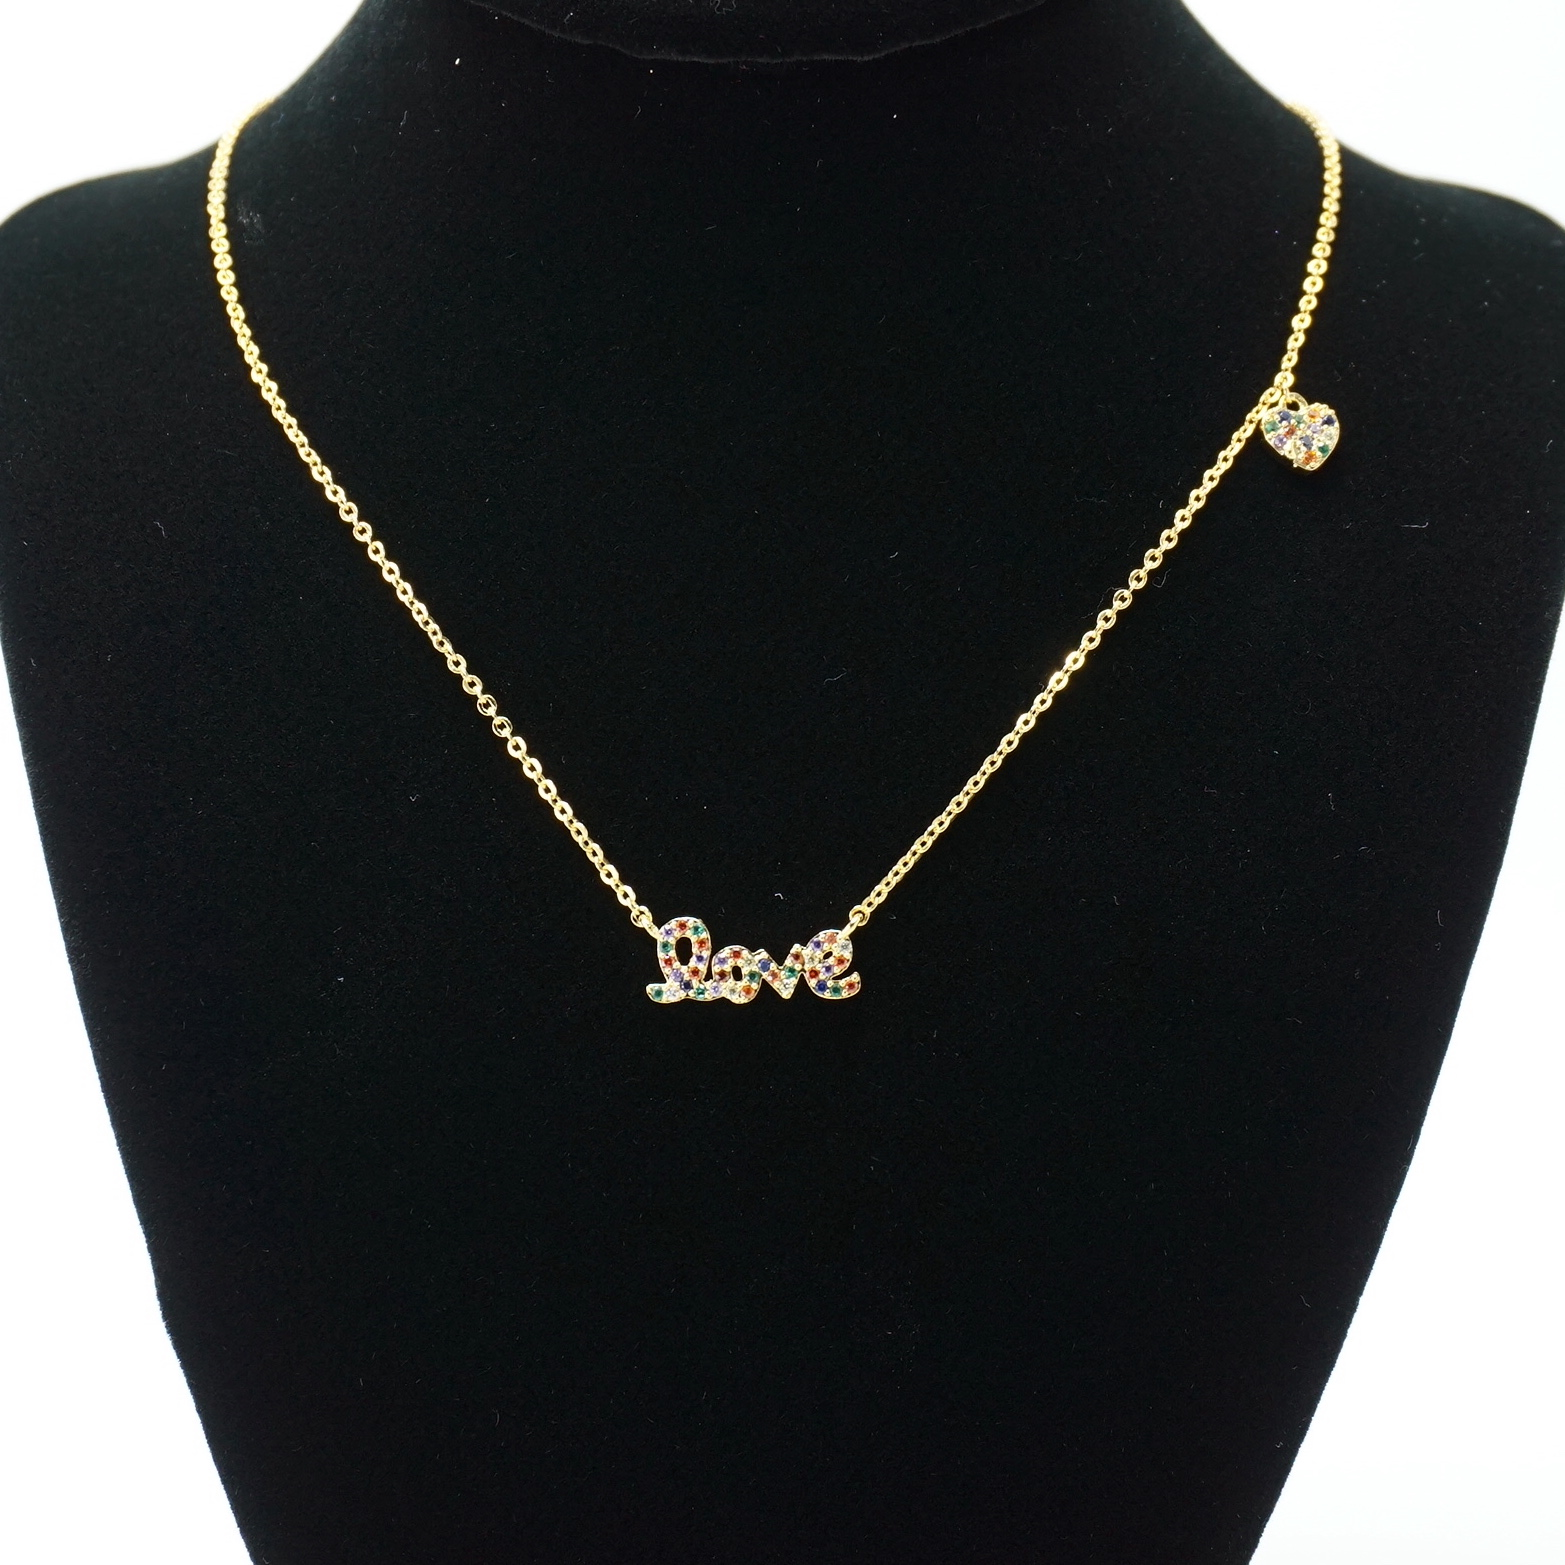 The Love Necklace Gold with Multi Stones on Stand